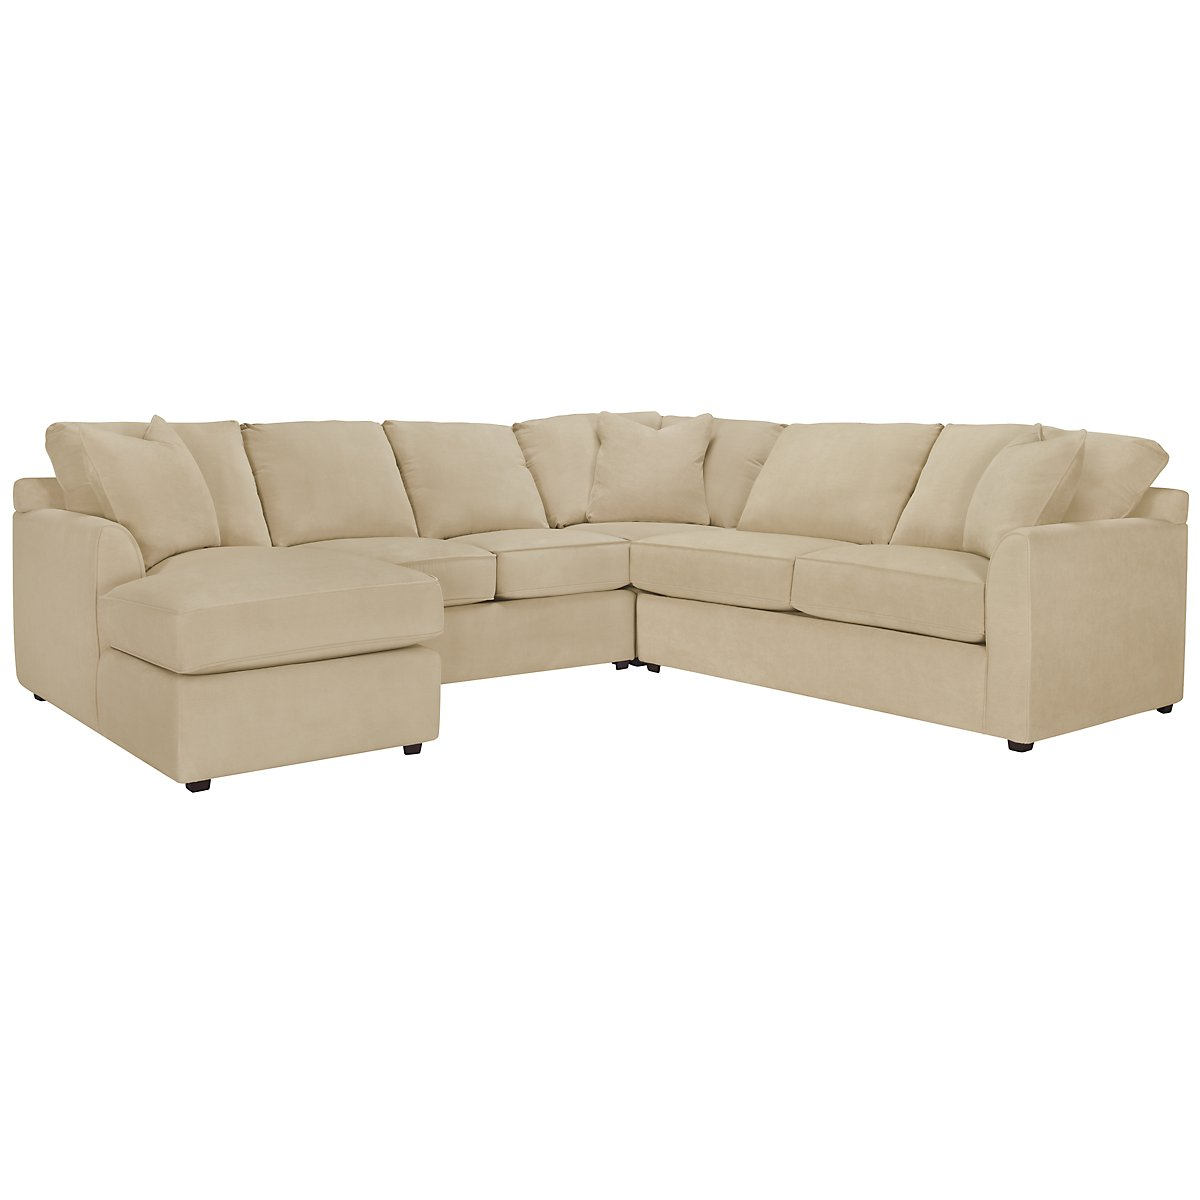 Express3 Light Beige Microfiber Small Left Chaise Sectional